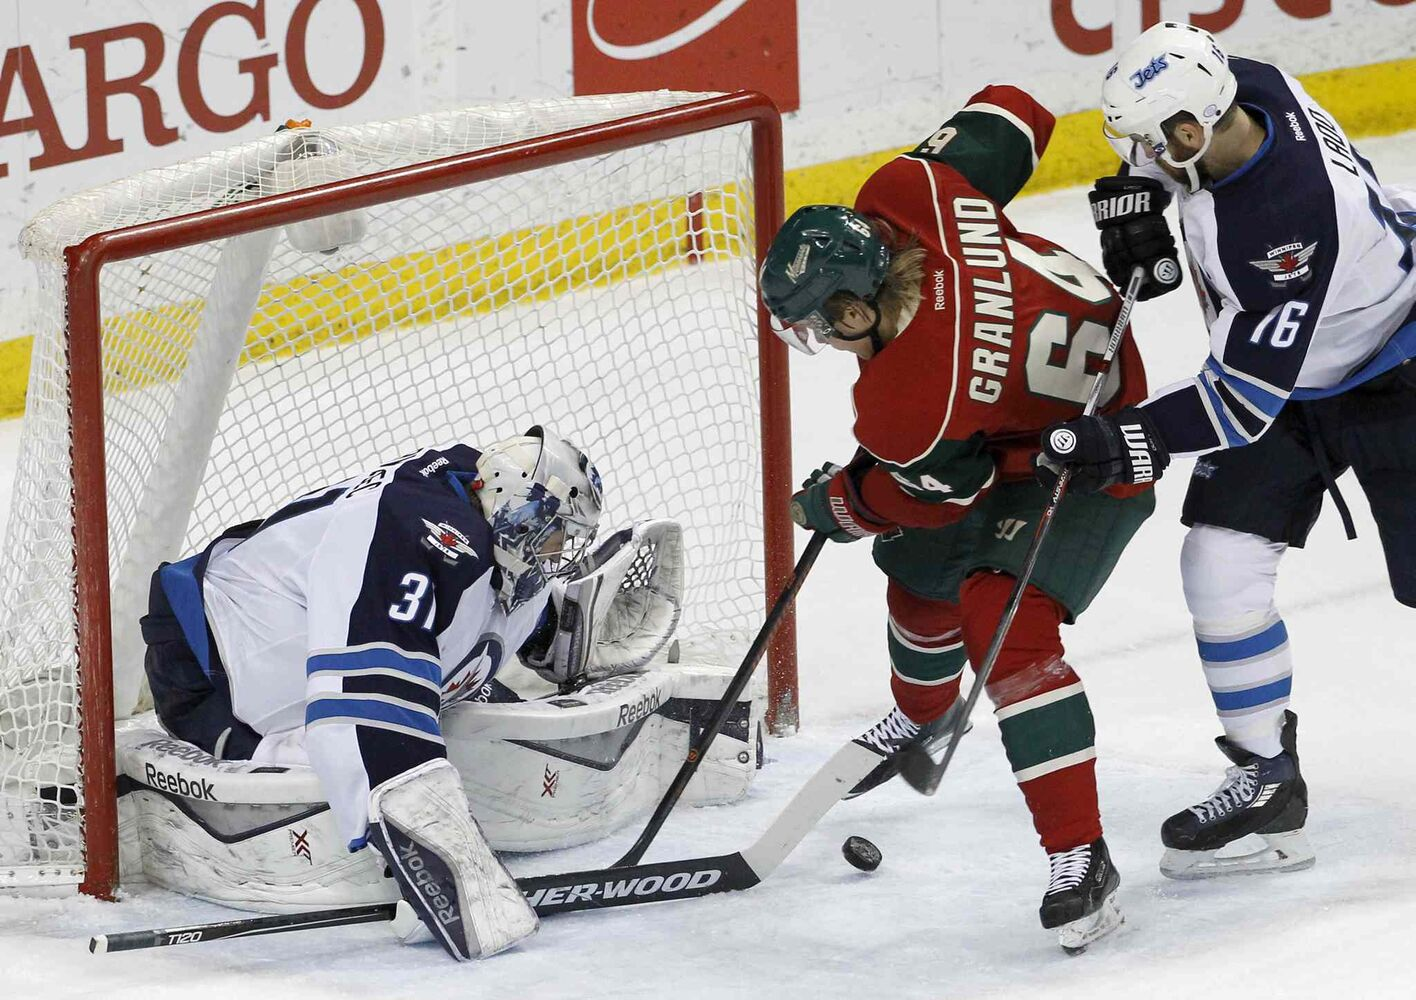 Winnipeg Jets goalie Ondrej Pavelec (31) deflects a shot by Minnesota Wild centre Mikael Granlund (64) as Jets left wing Andrew Ladd, right, defends during the first period of Monday's game. (Ann Heisenfelt / The Associated Press )